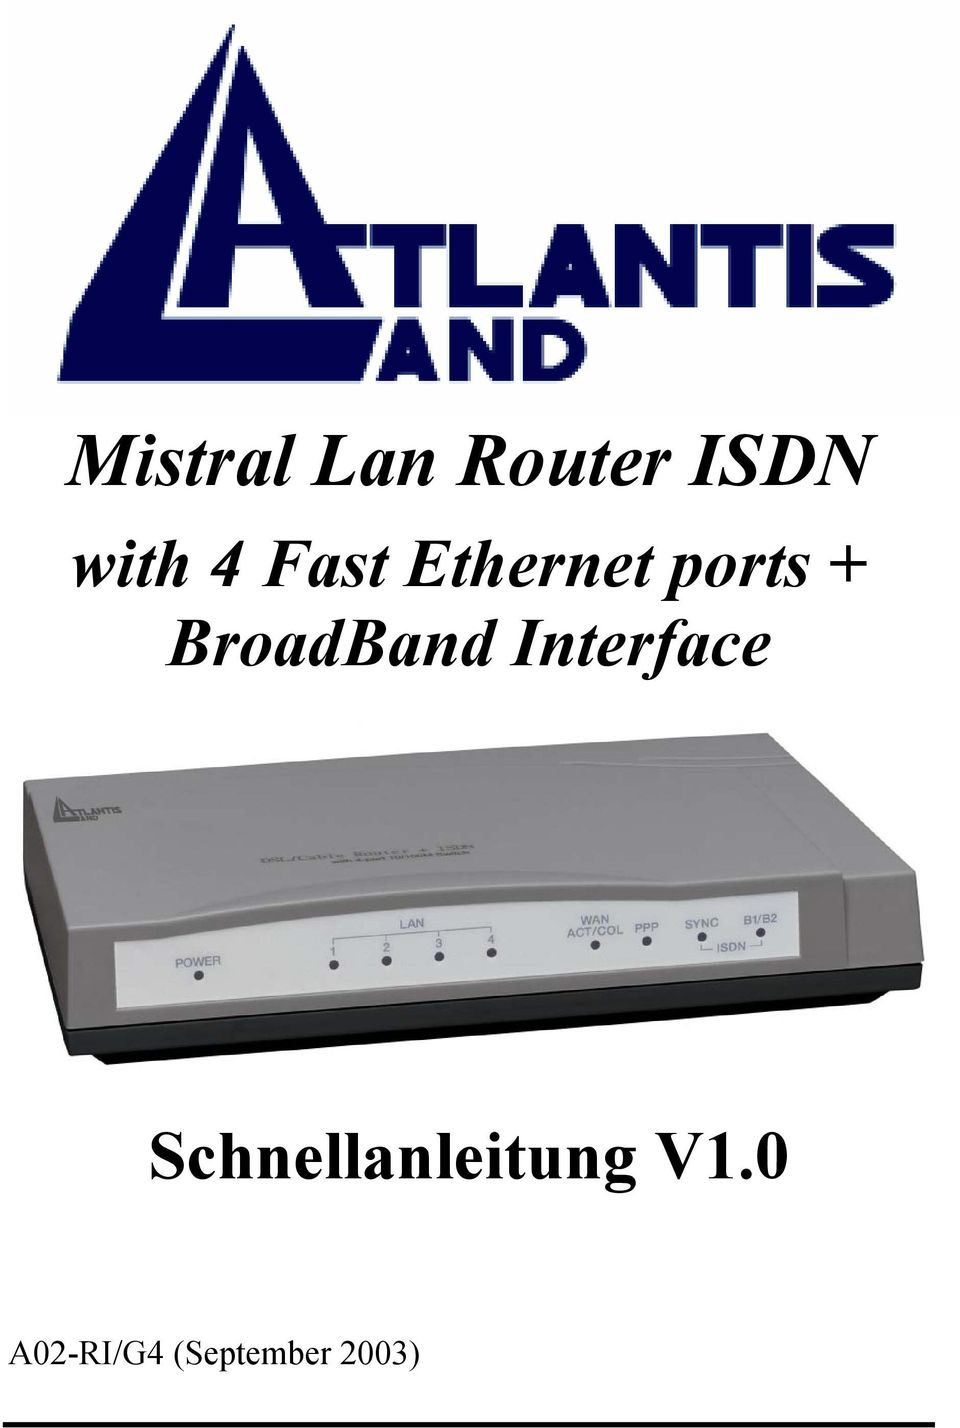 BroadBand Interface